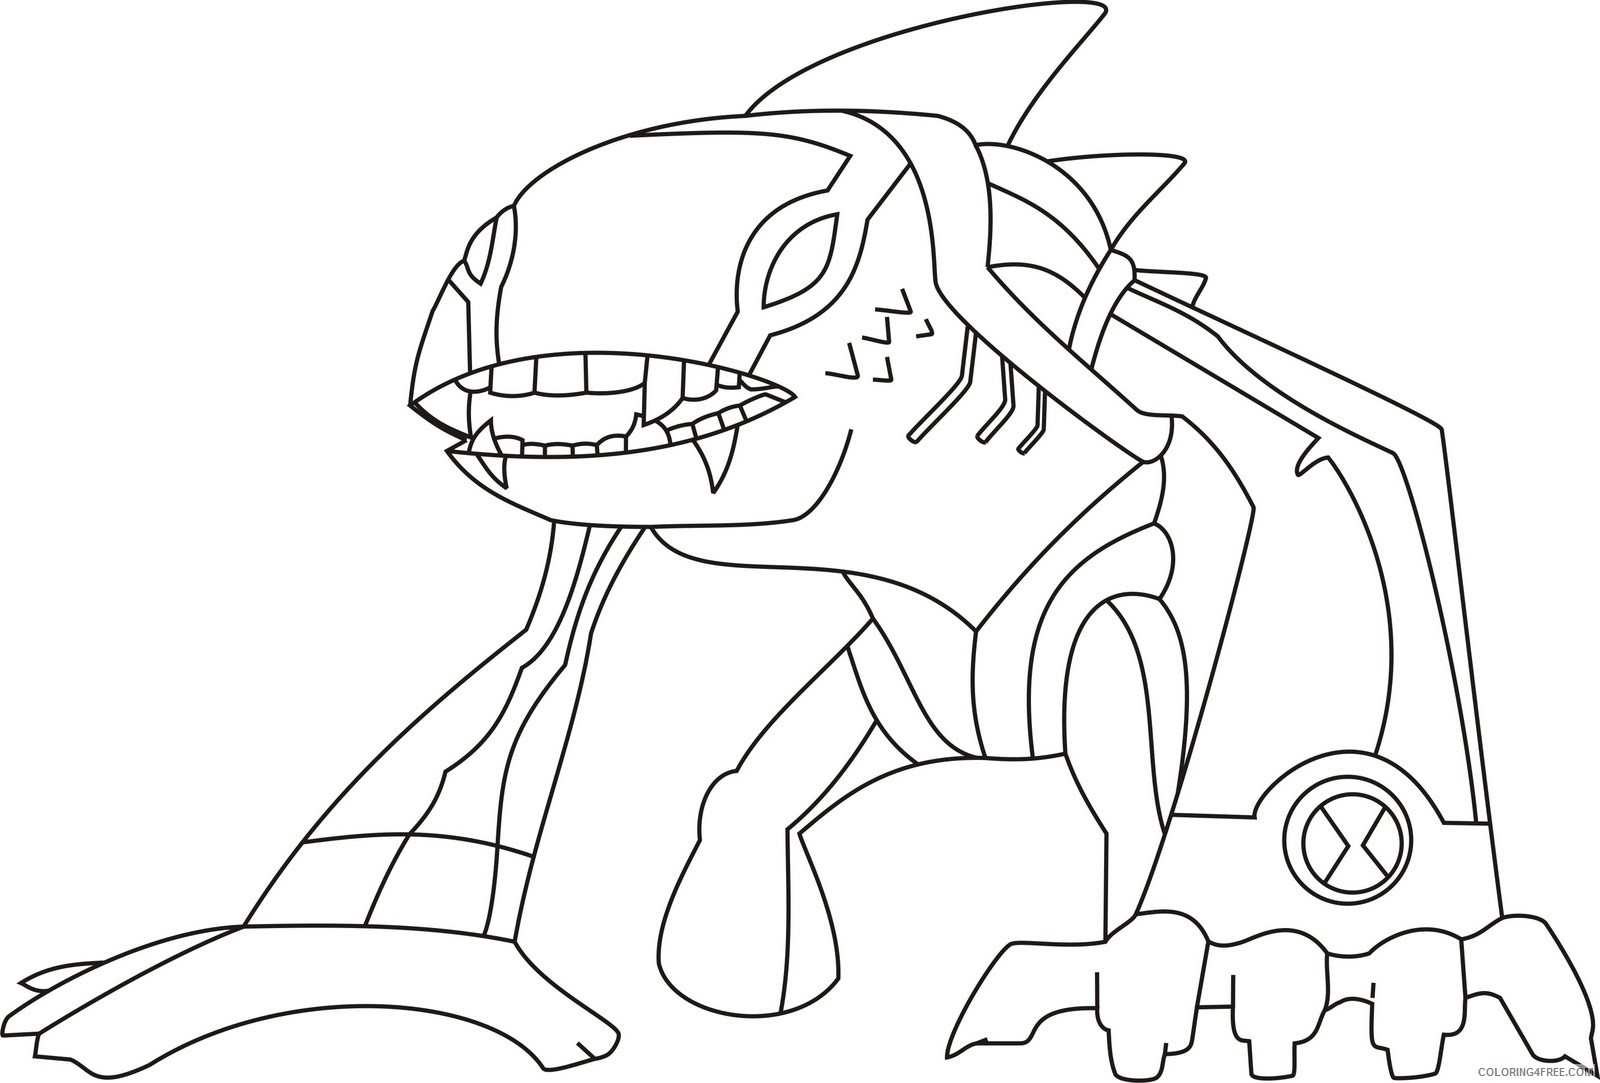 ben 10 coloring pages articguana Coloring4free